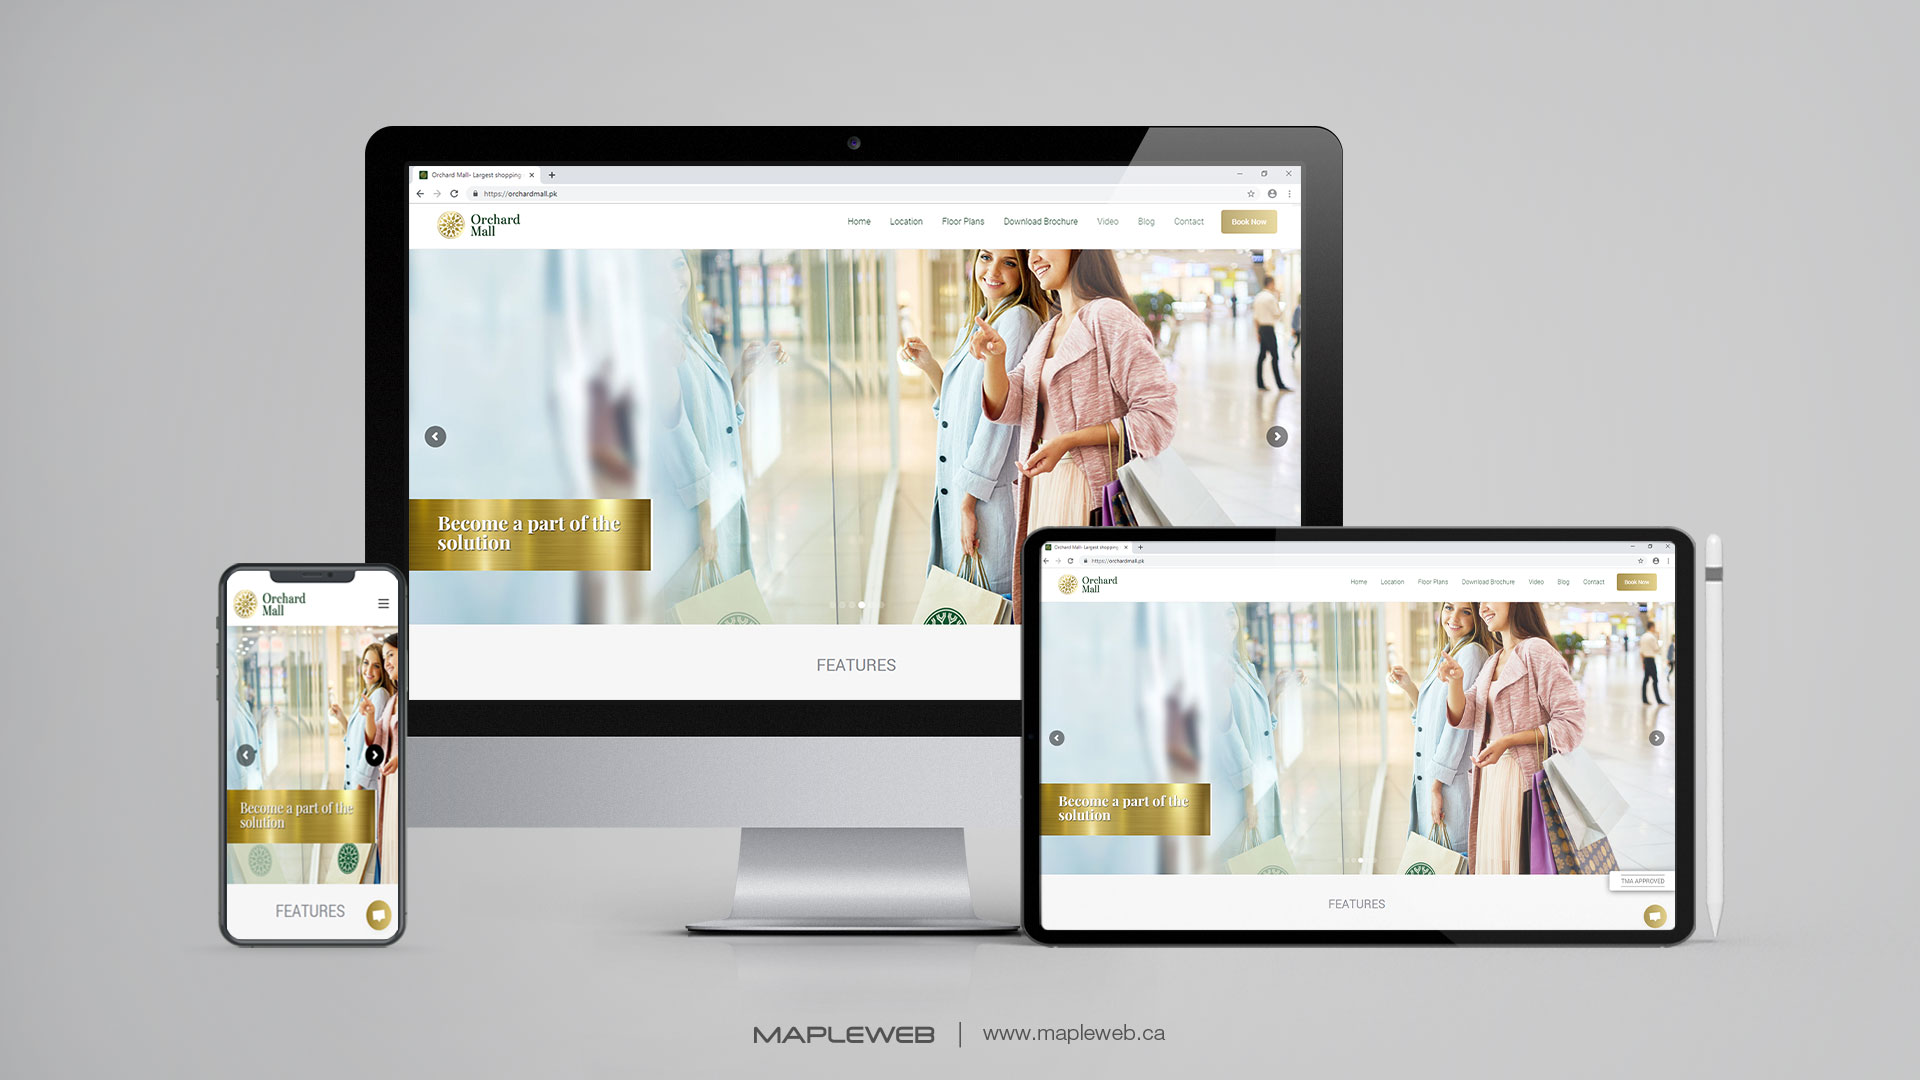 orchard-mall-Vancouver-web-design-Vancouver-web-development-by-mapleweb-canada-multiple-devices-display